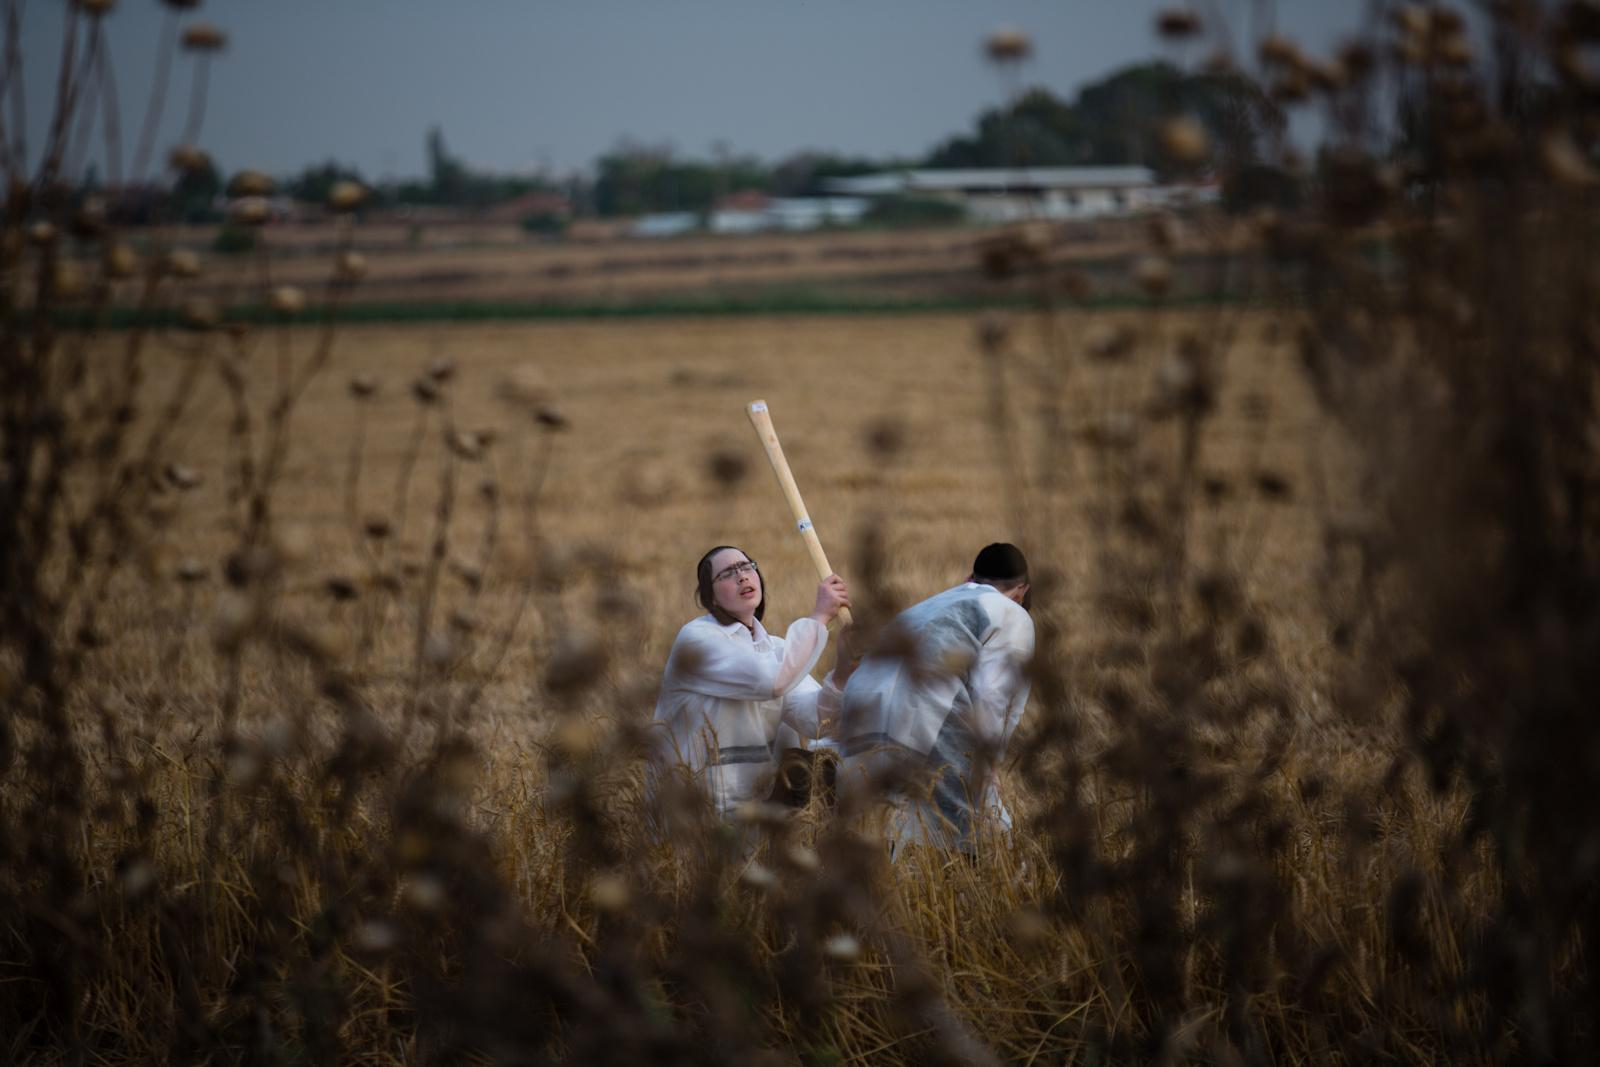 KOMEMIYUT, ISRAEL - MAY 03, 2016:Ultra-Orthodox Jews use sticks to separate the grains of the harvested wheat, in the Ultra-orthodox moshav of Komemiyut May 3, 2016. The harvested wheat will later be used to make the traditional unleavened bread eaten during the Jewish holiday of Passover.